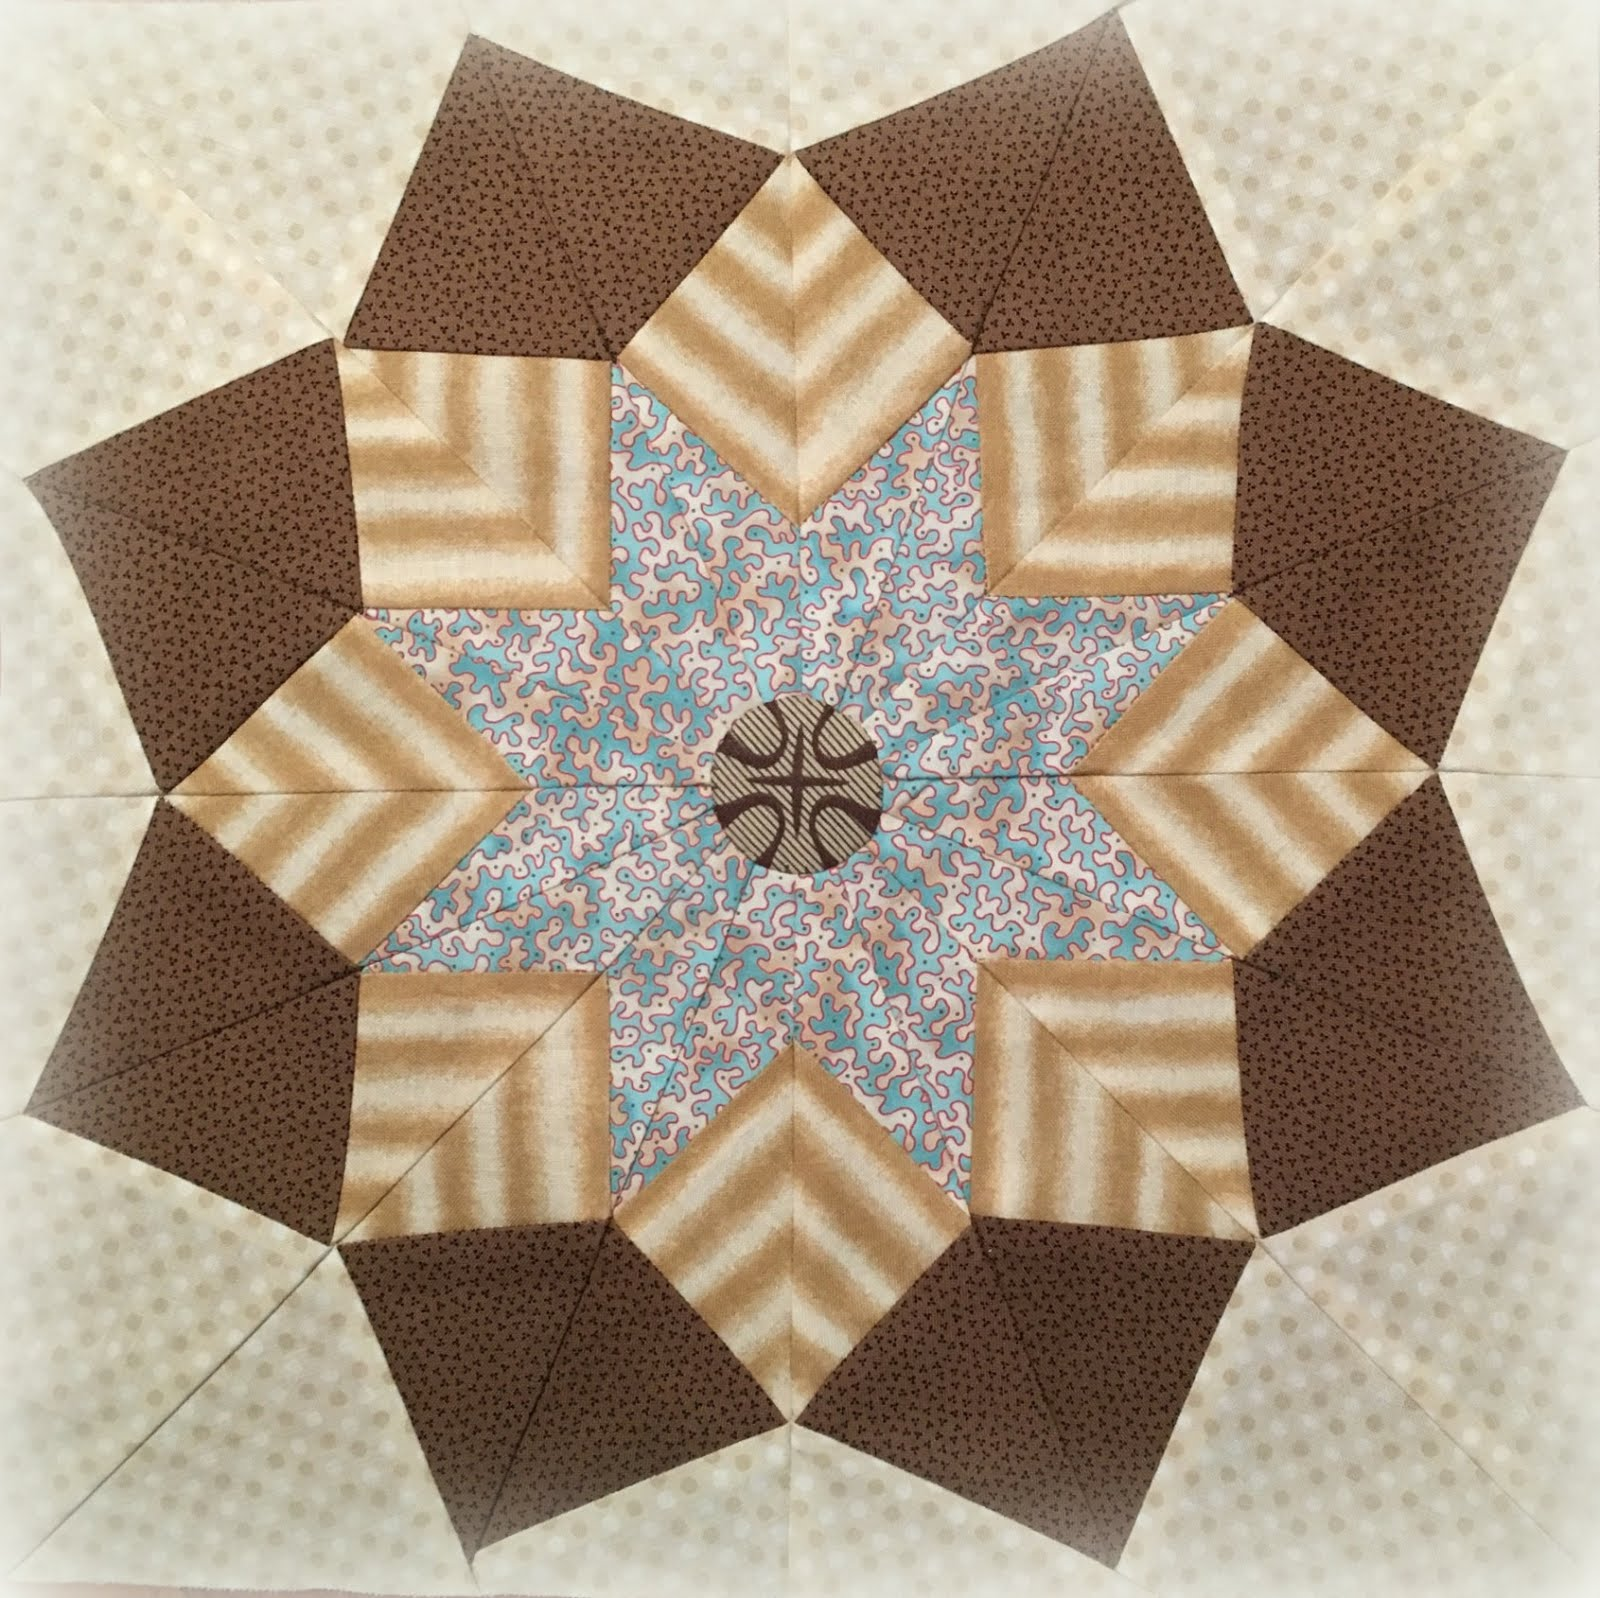 quilting wheat – Cowtown Quilts |Wheat Quilt Patterns